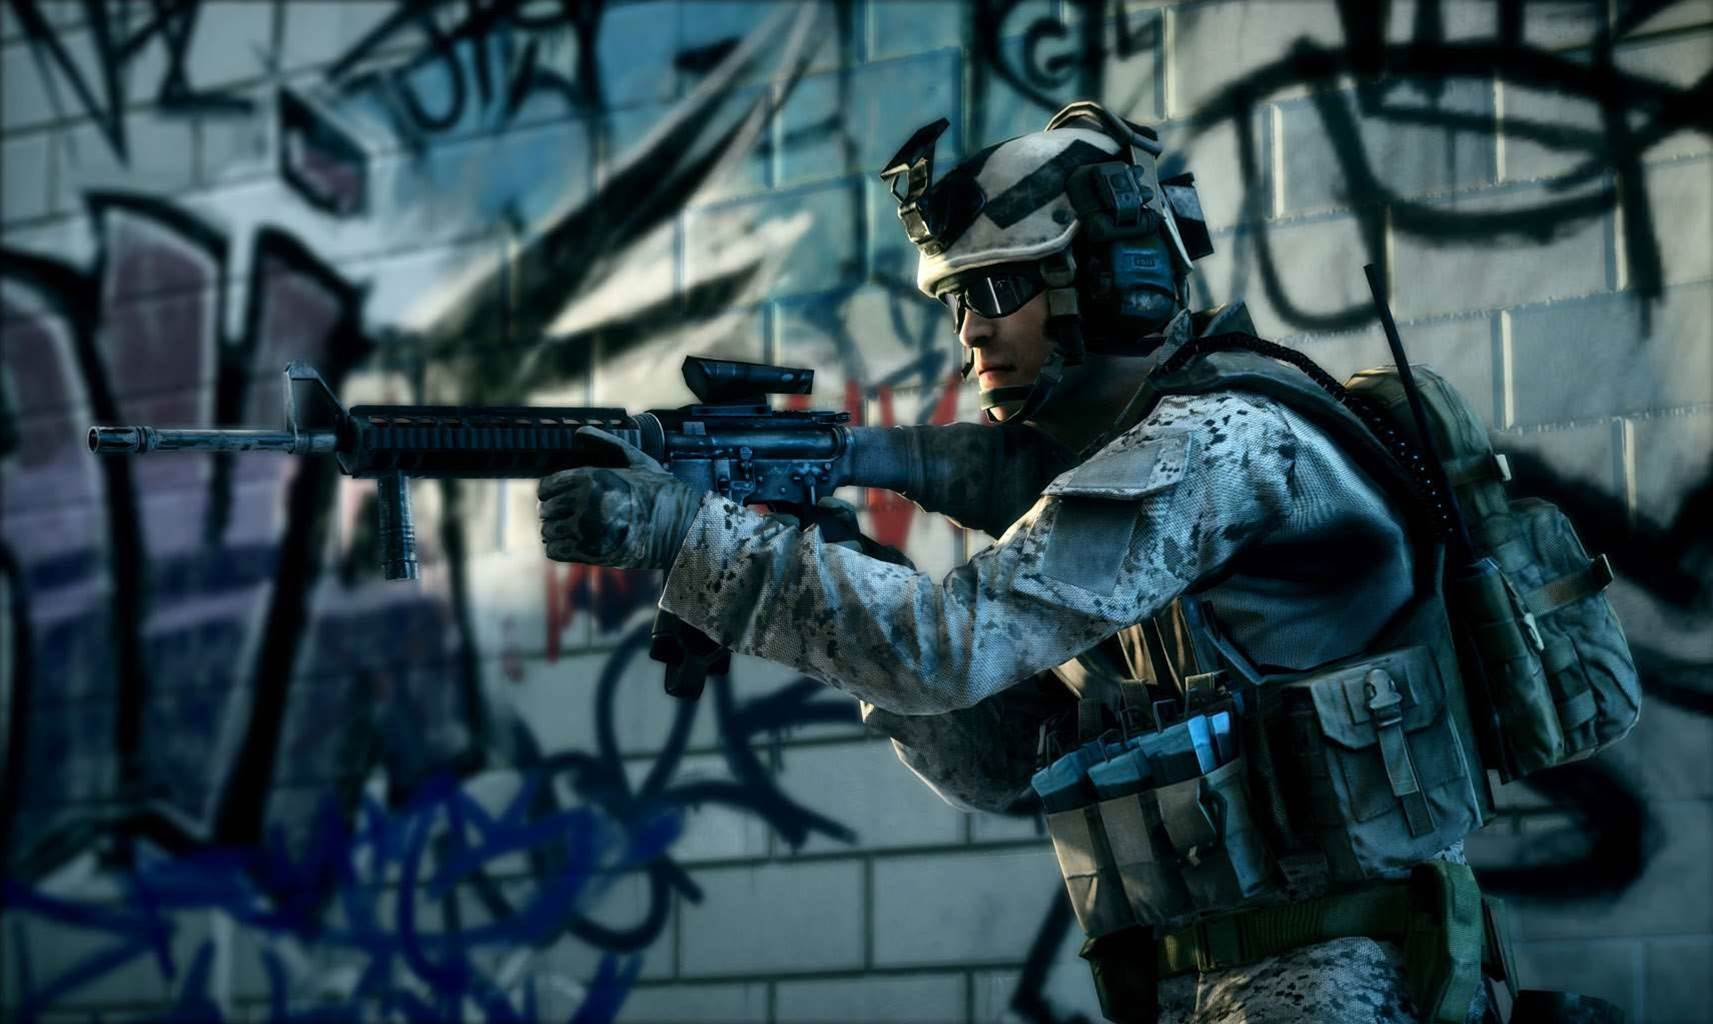 Battlefield 3 on PC NOT featuring a Commander role